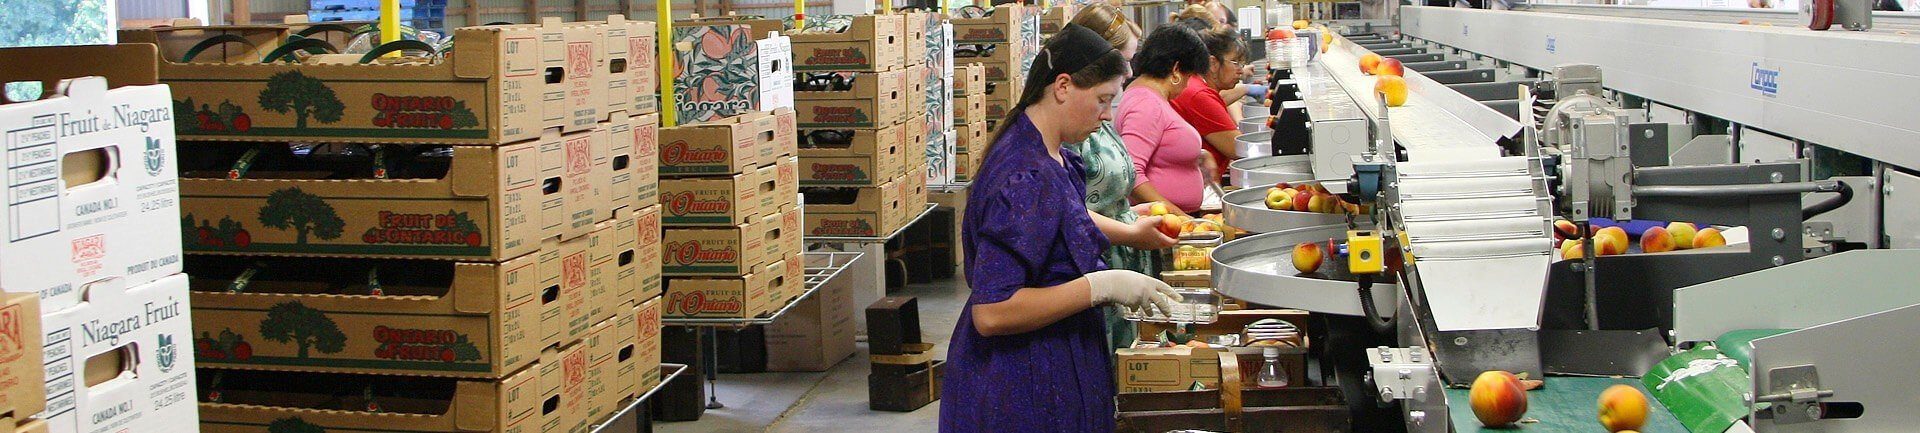 Overhead conveyor delivers empty cartons in fruit packing house.